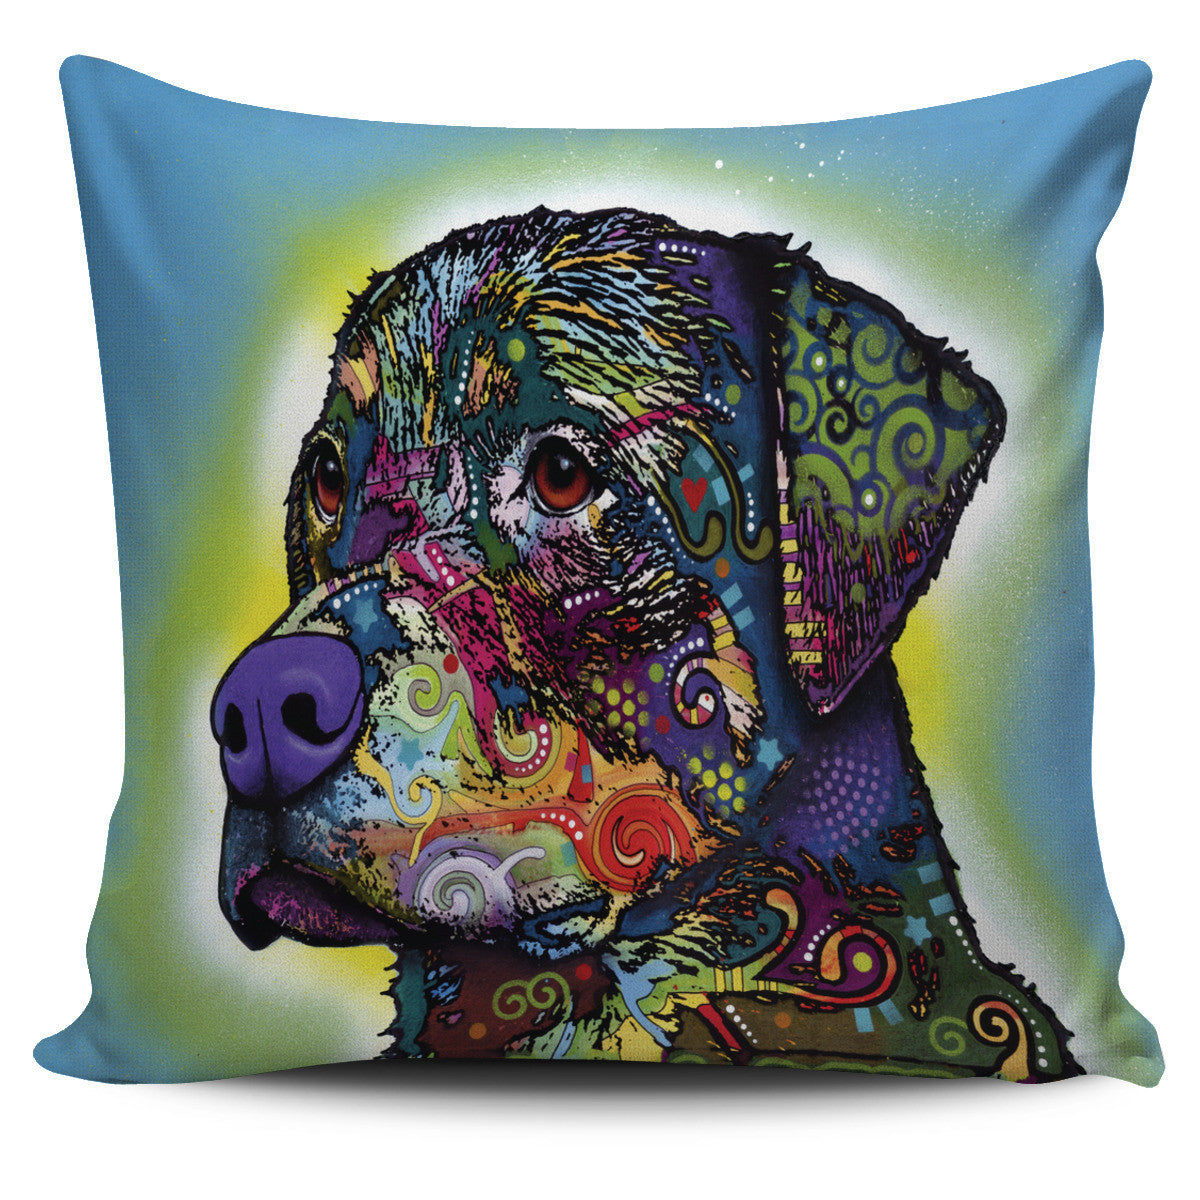 Lab Series Pillow Covers Offer